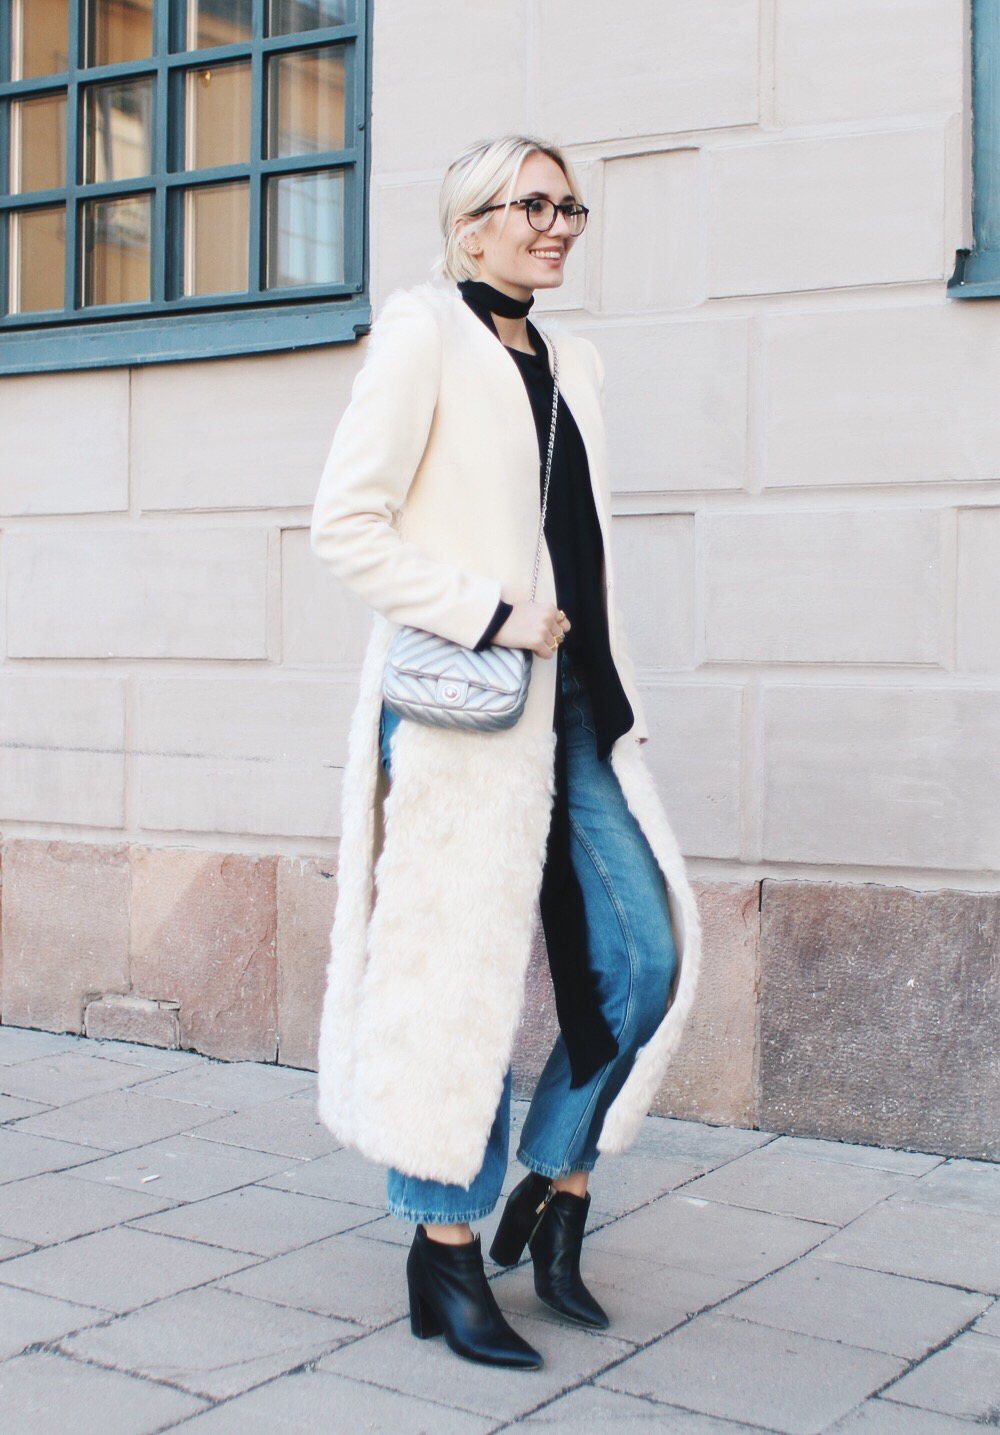 Josefin Dahlberg looks chic and stylish in this elegant faux fur maxi coat, paired with Chelsea boots and flared jeans. Throw in a skinny scarf to add edge and an extra kick to your outfit! Brands not specified.